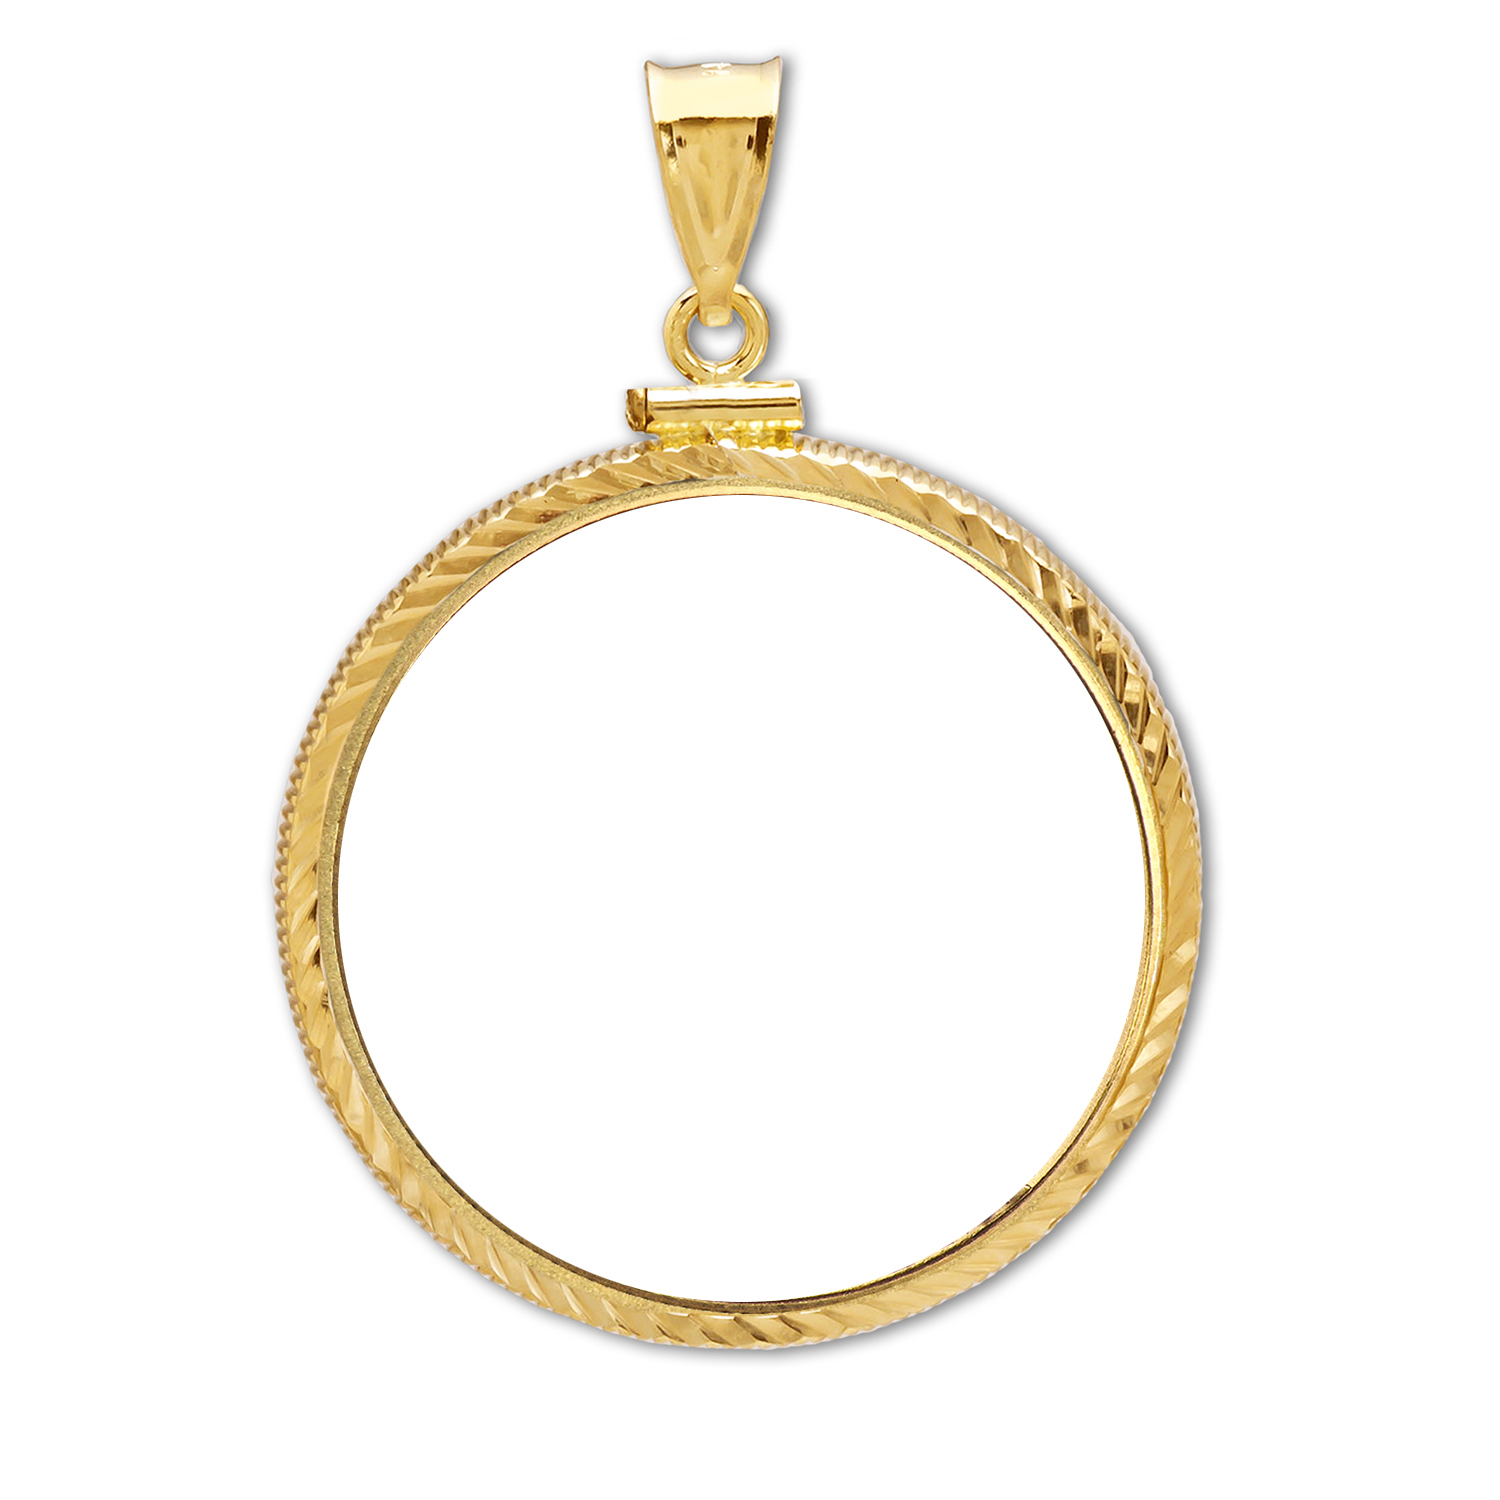 14K Gold Screw-Top Diamond-Cut Coin Bezel - 22 millimeter